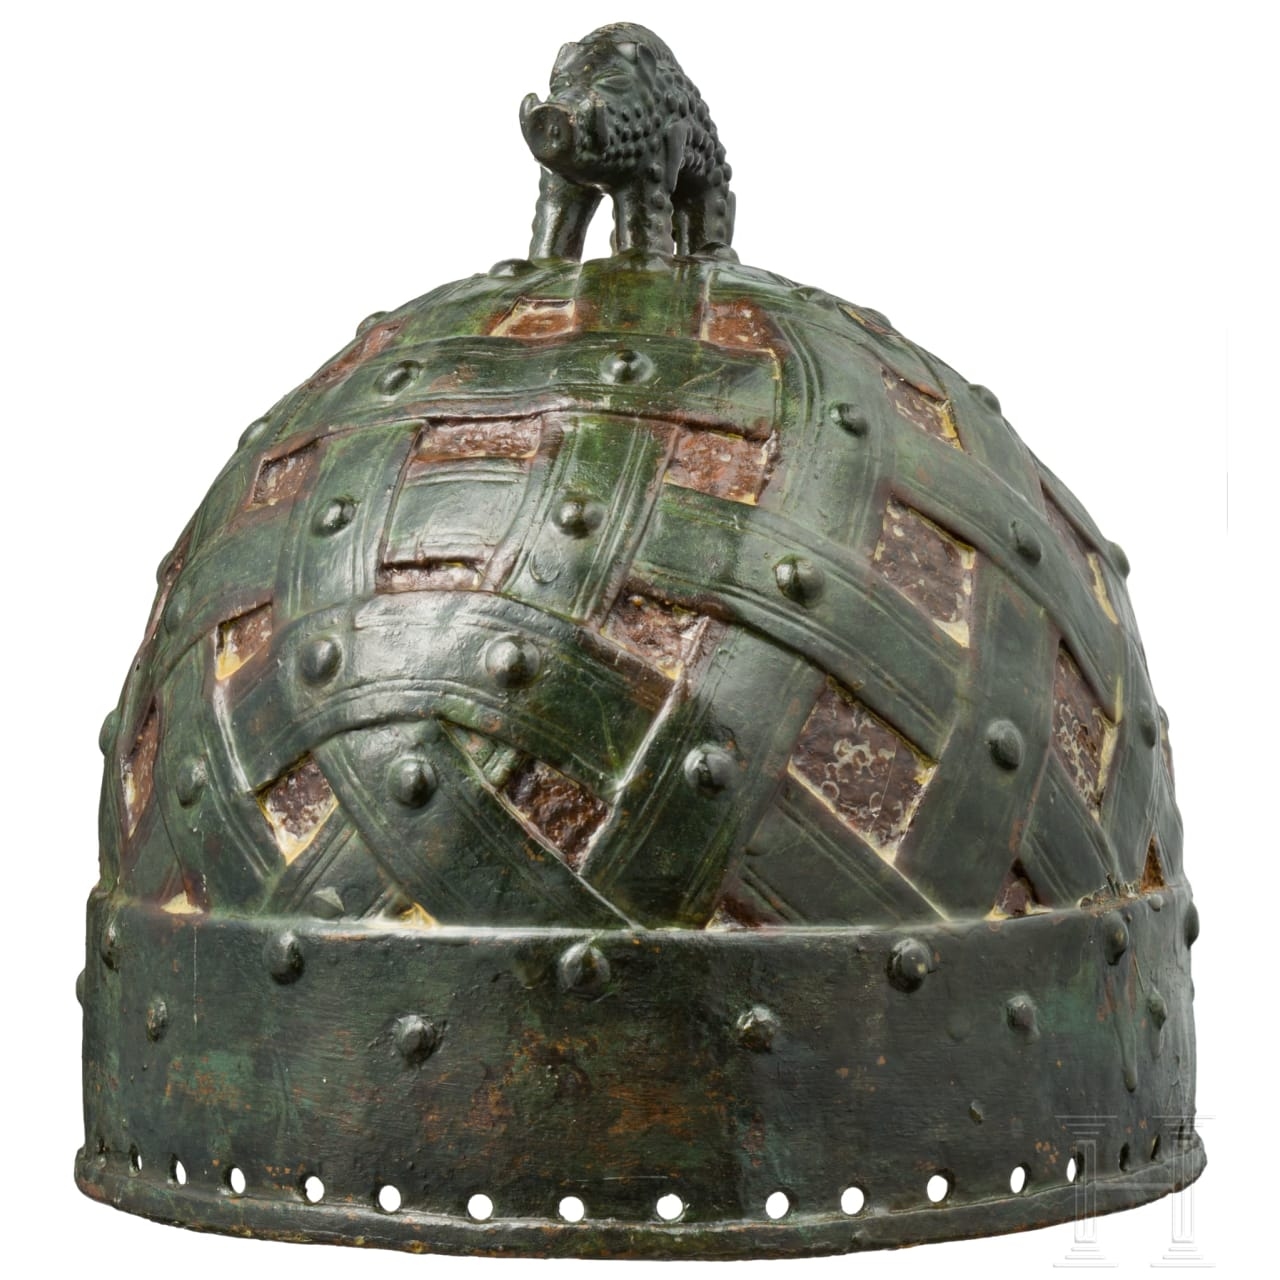 A Saxonian/Viking helmet of the Vendel-Typus, musuem-quality reproduction in 7th/8th century style